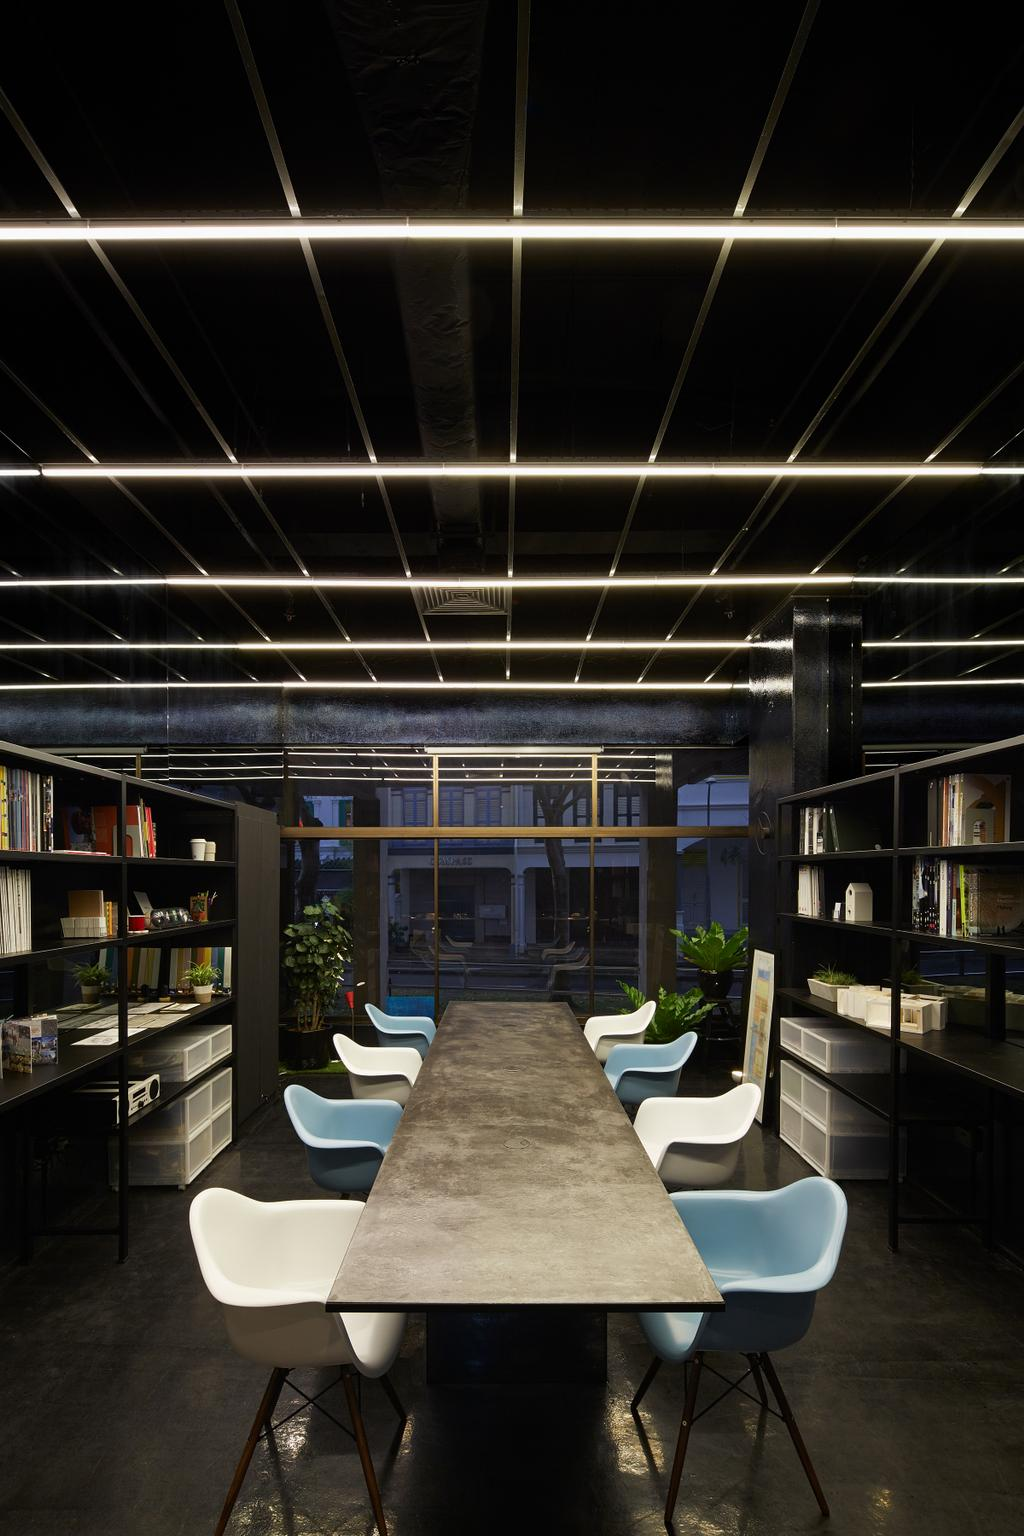 Solid with Asolidplan, Commercial, Architect, asolidplan, Contemporary, Office Furnitures, Showroom Furnitures, Long Table, Meeting Table, Flora, Jar, Plant, Potted Plant, Pottery, Vase, Balcony